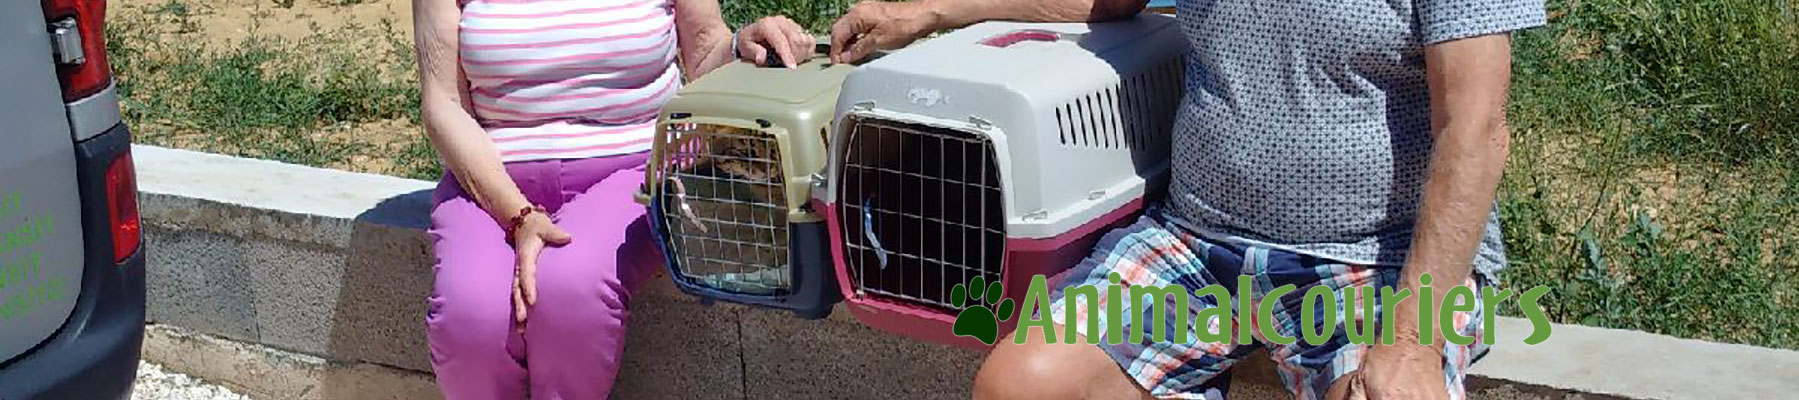 transporting cats from France